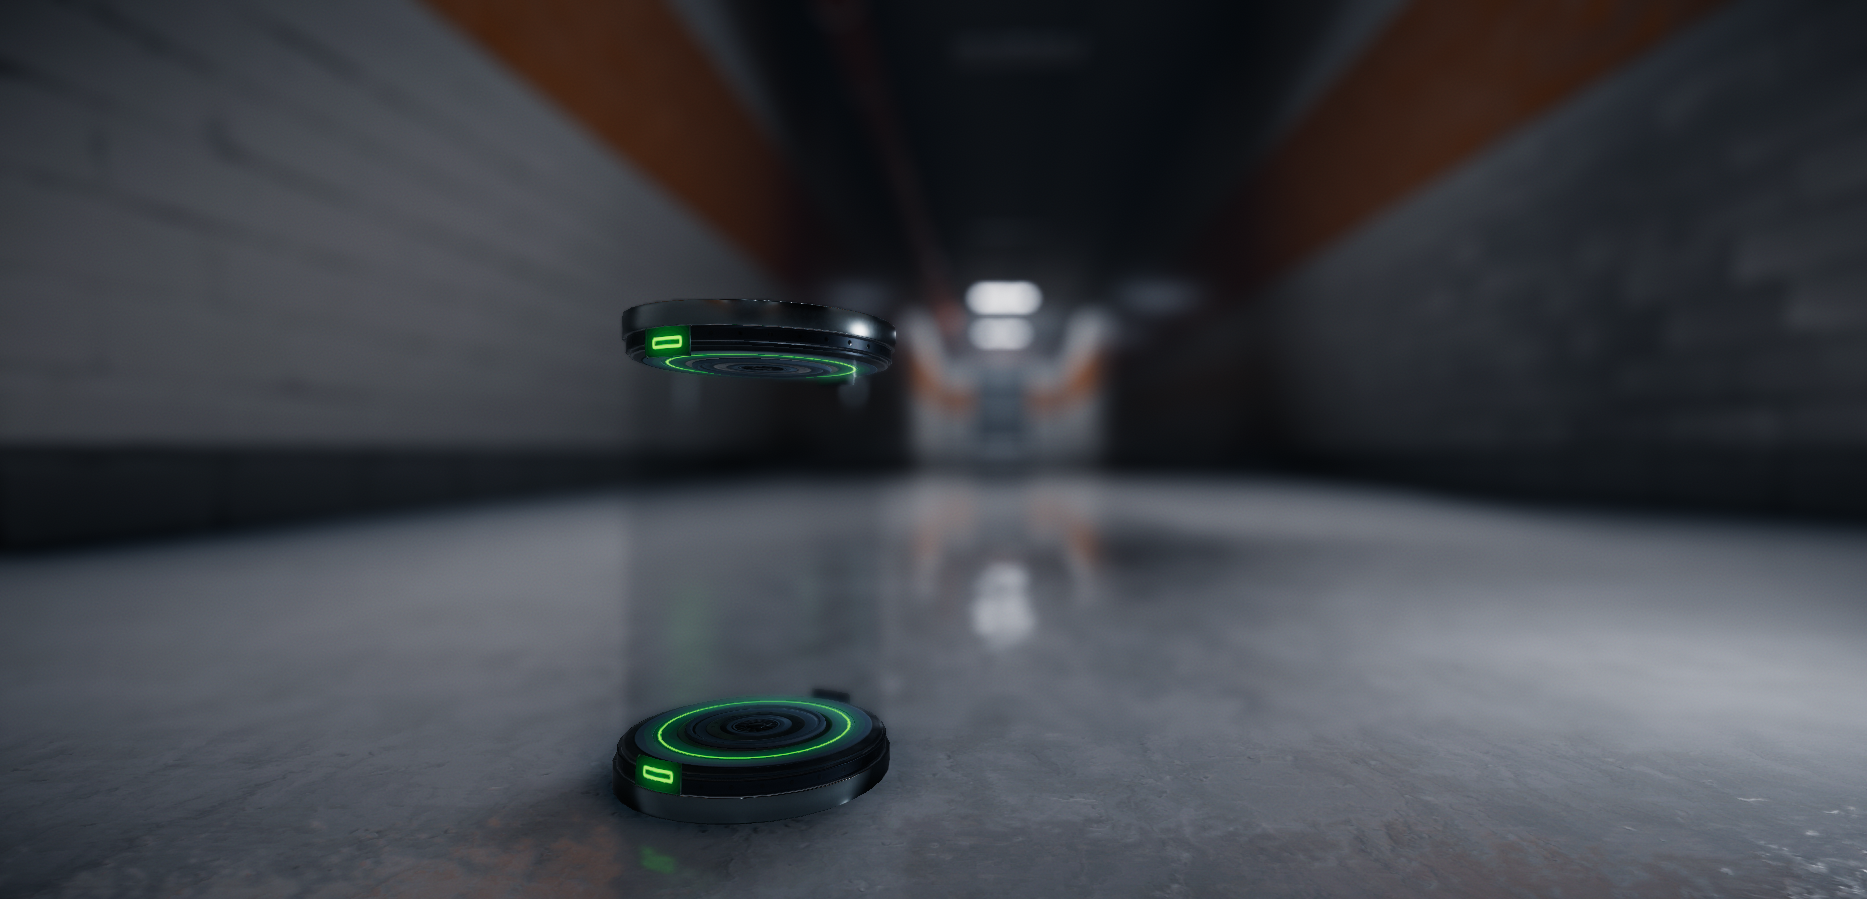 Capsule modeling and texturing